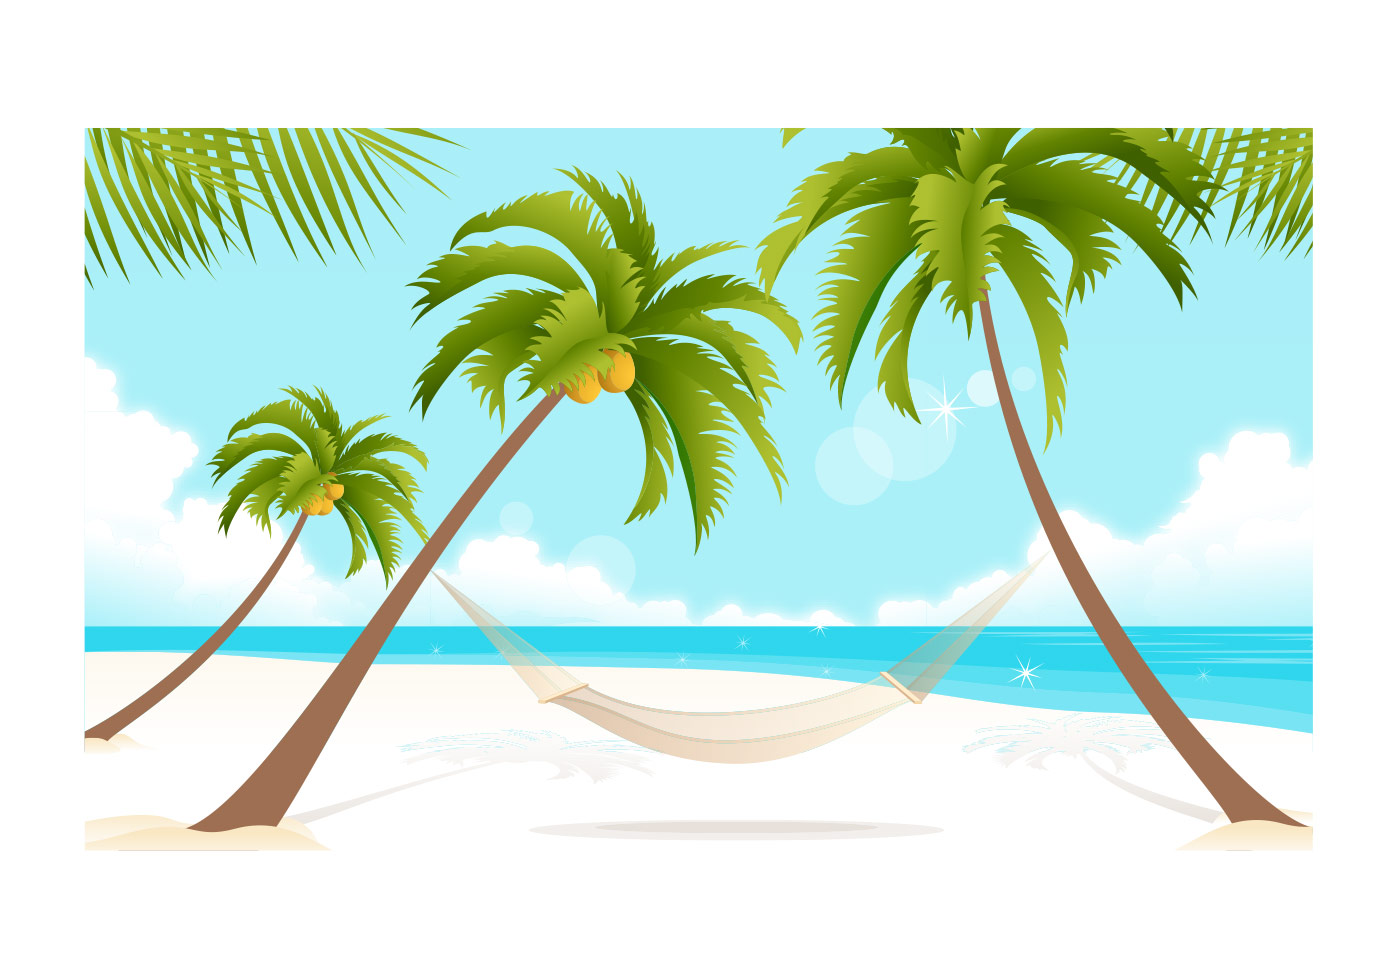 Beach And Palm Trees Wallpaper Free Photoshop Brushes At Brusheezy